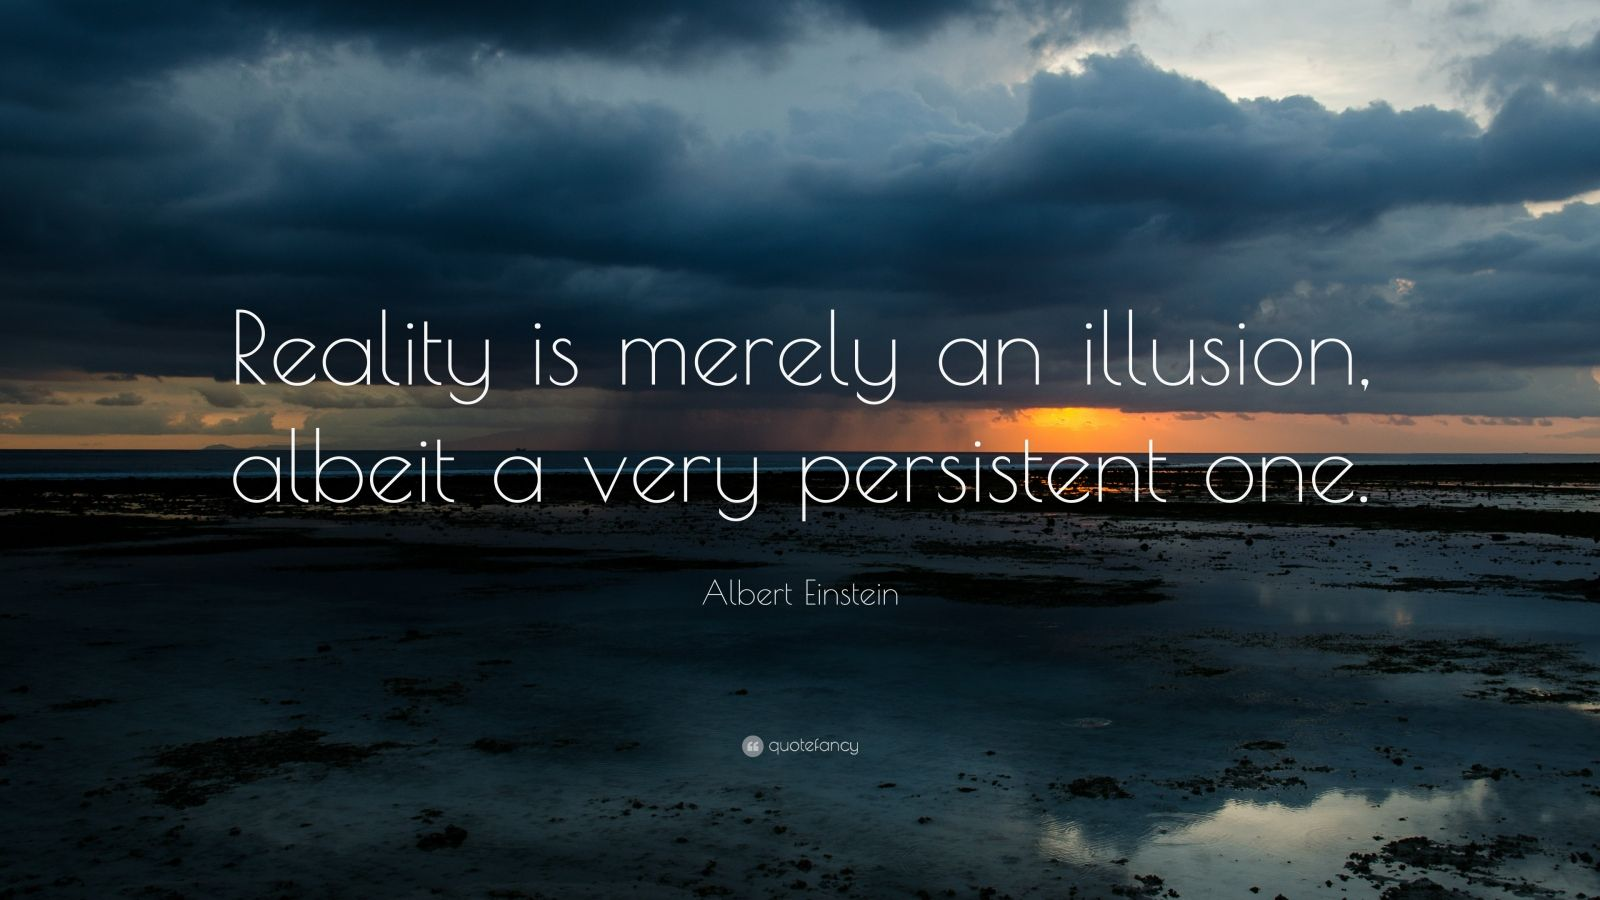 Wise Failure Quotes Wallpaper Albert Einstein Quote Reality Is Merely An Illusion